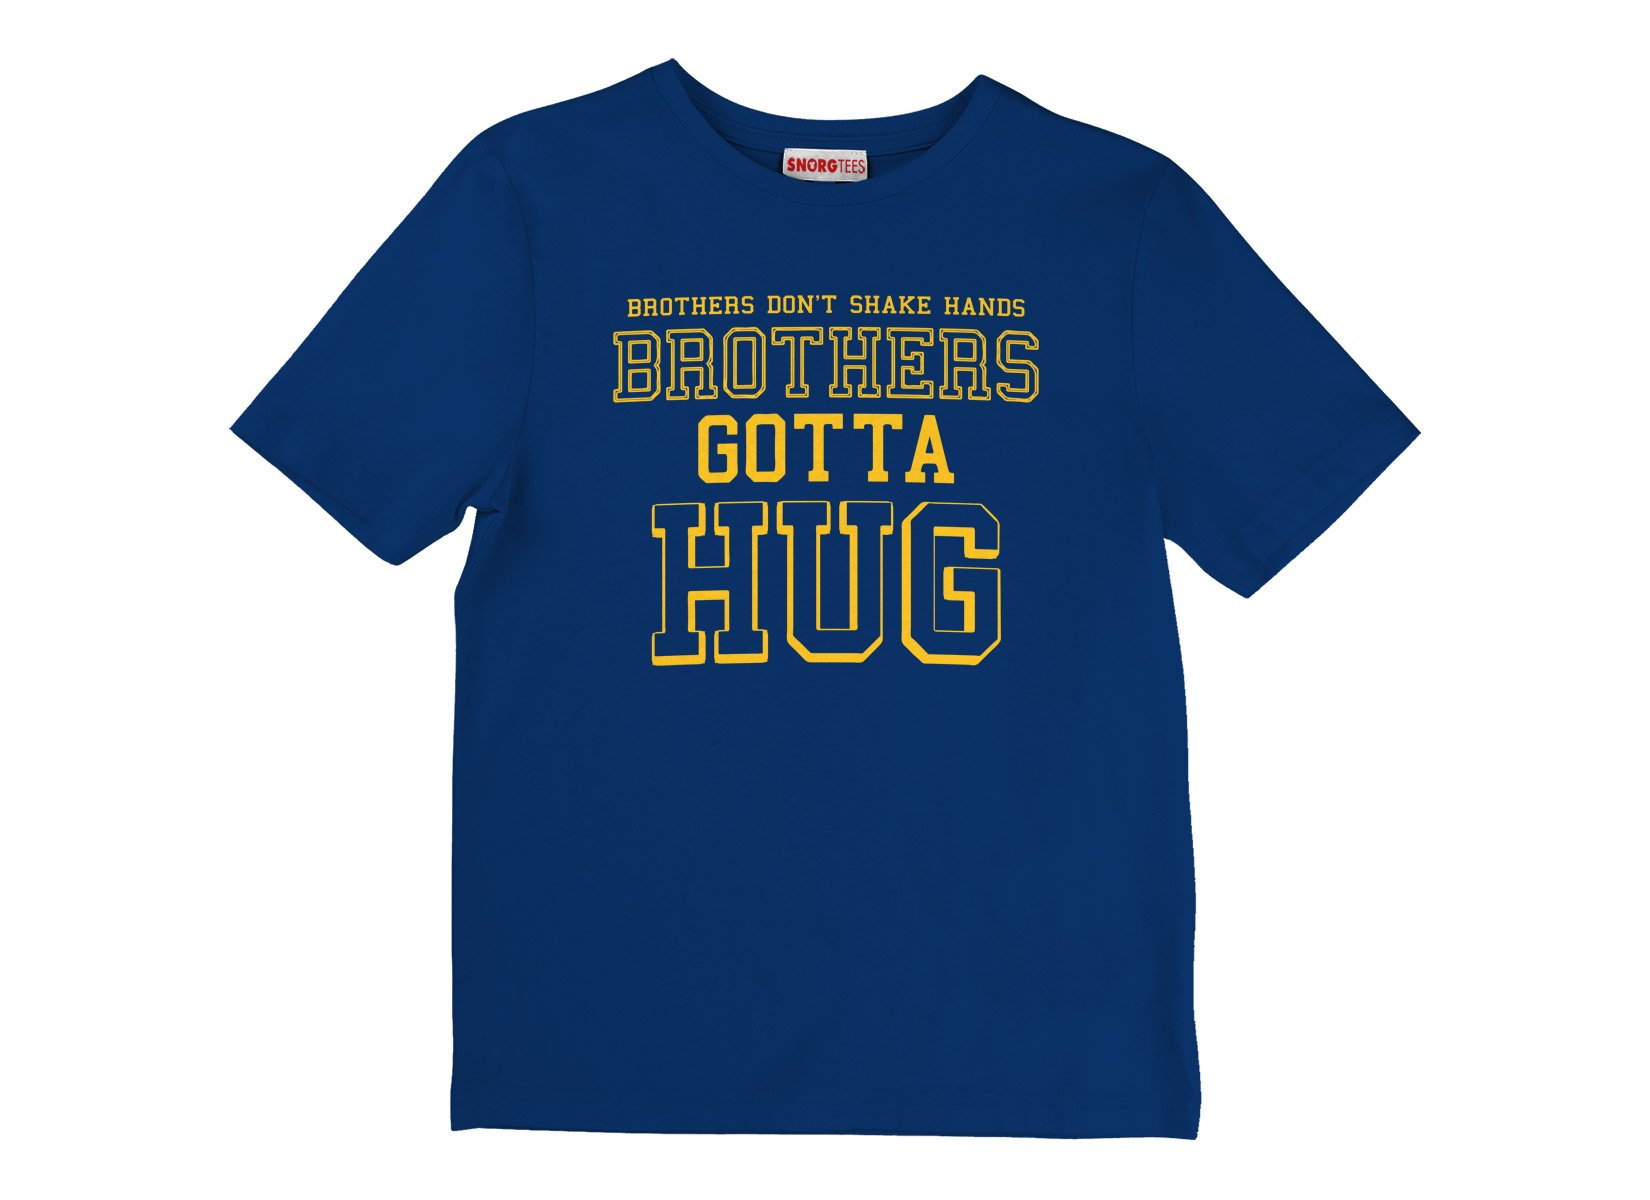 Brothers Gotta Hug on Kids T-Shirt